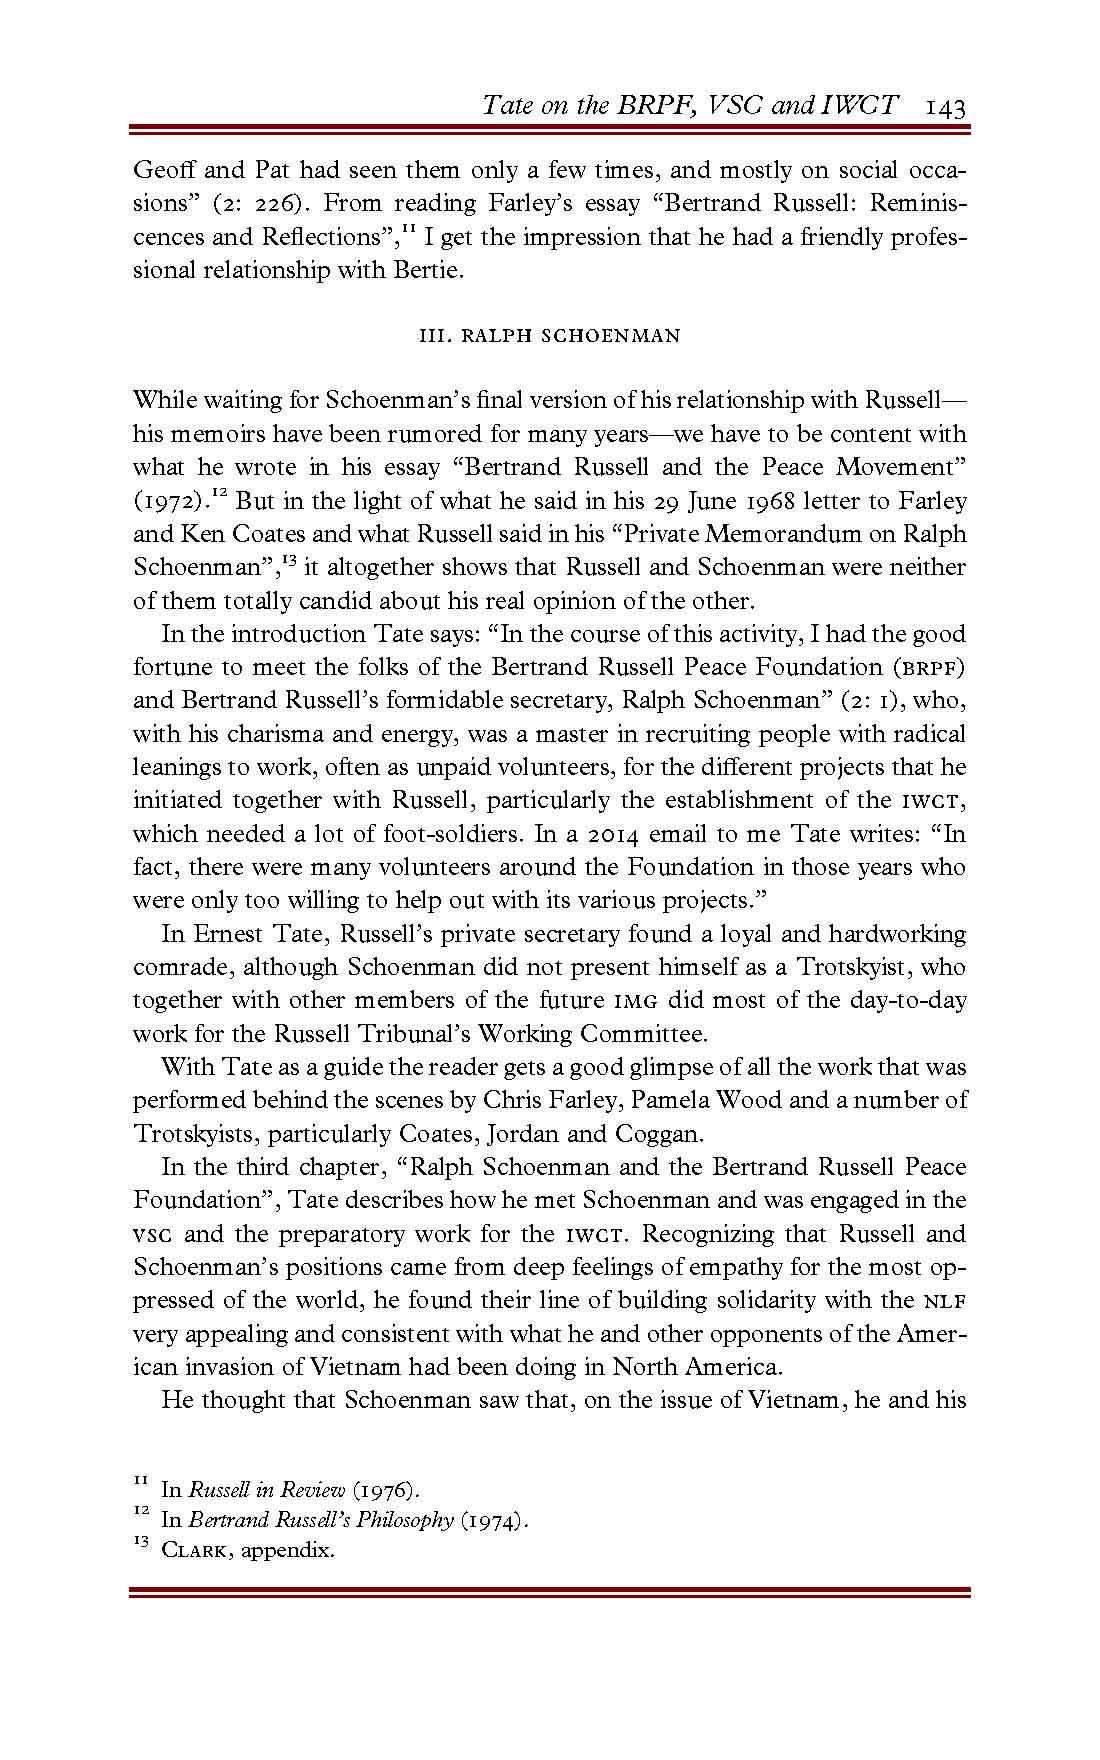 Anderson-- Pages from RJ 3402 050 red-5 (2)-1_Page_09